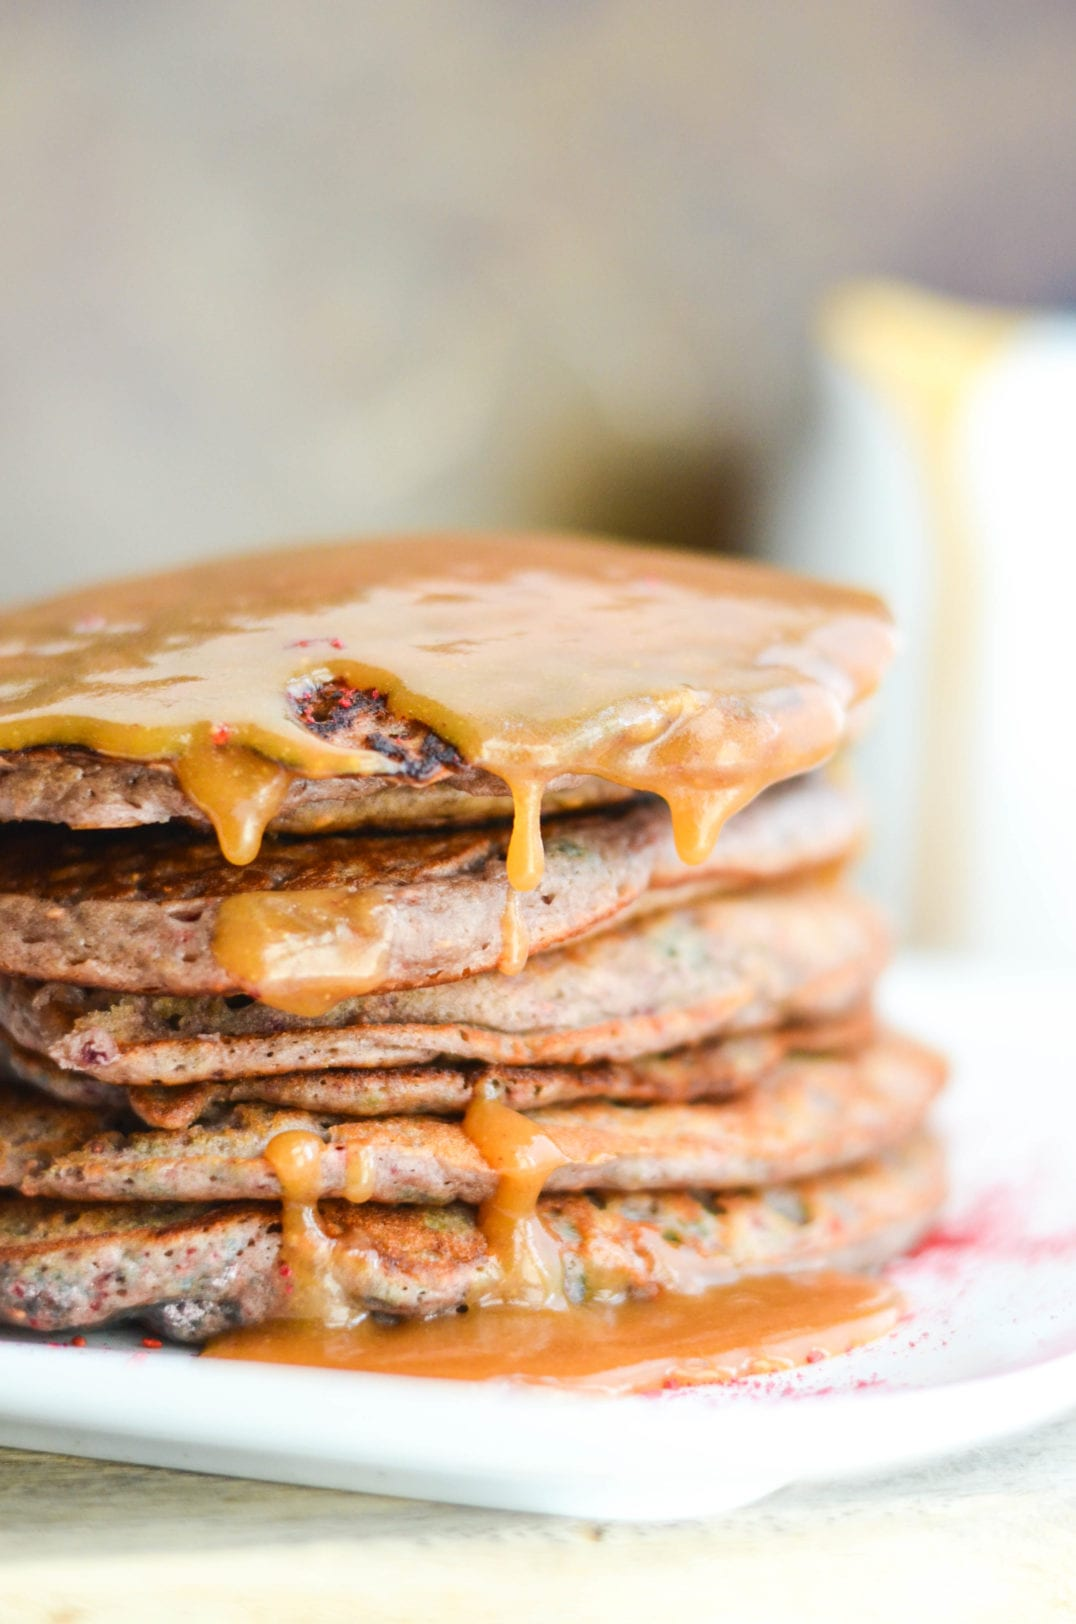 Raspberry Pancakes with Peanut Butter Maple Syrup